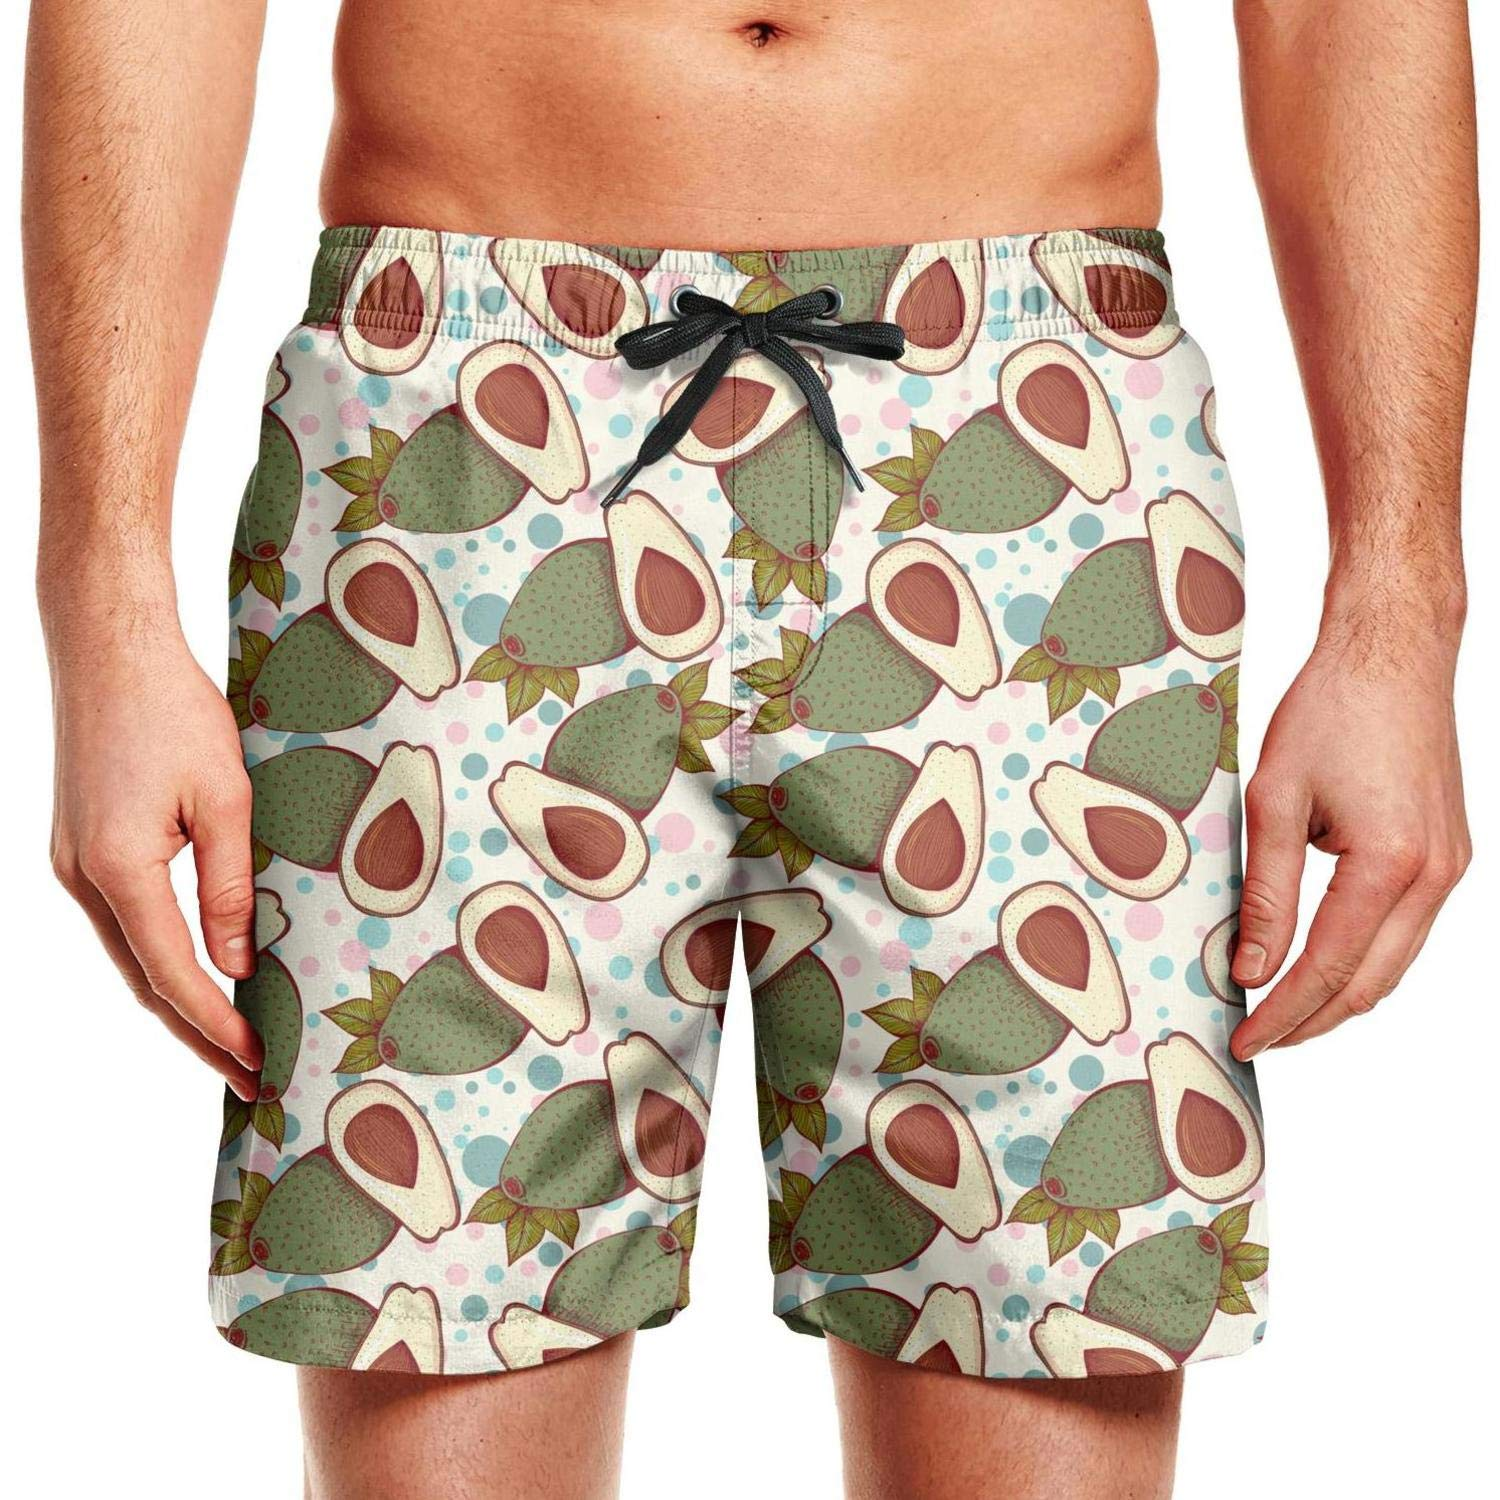 SYBING Whole and Half Avocados Gifts Mens Fashion 3D Printed Water Resistant Sports Running Beach Board Shorts